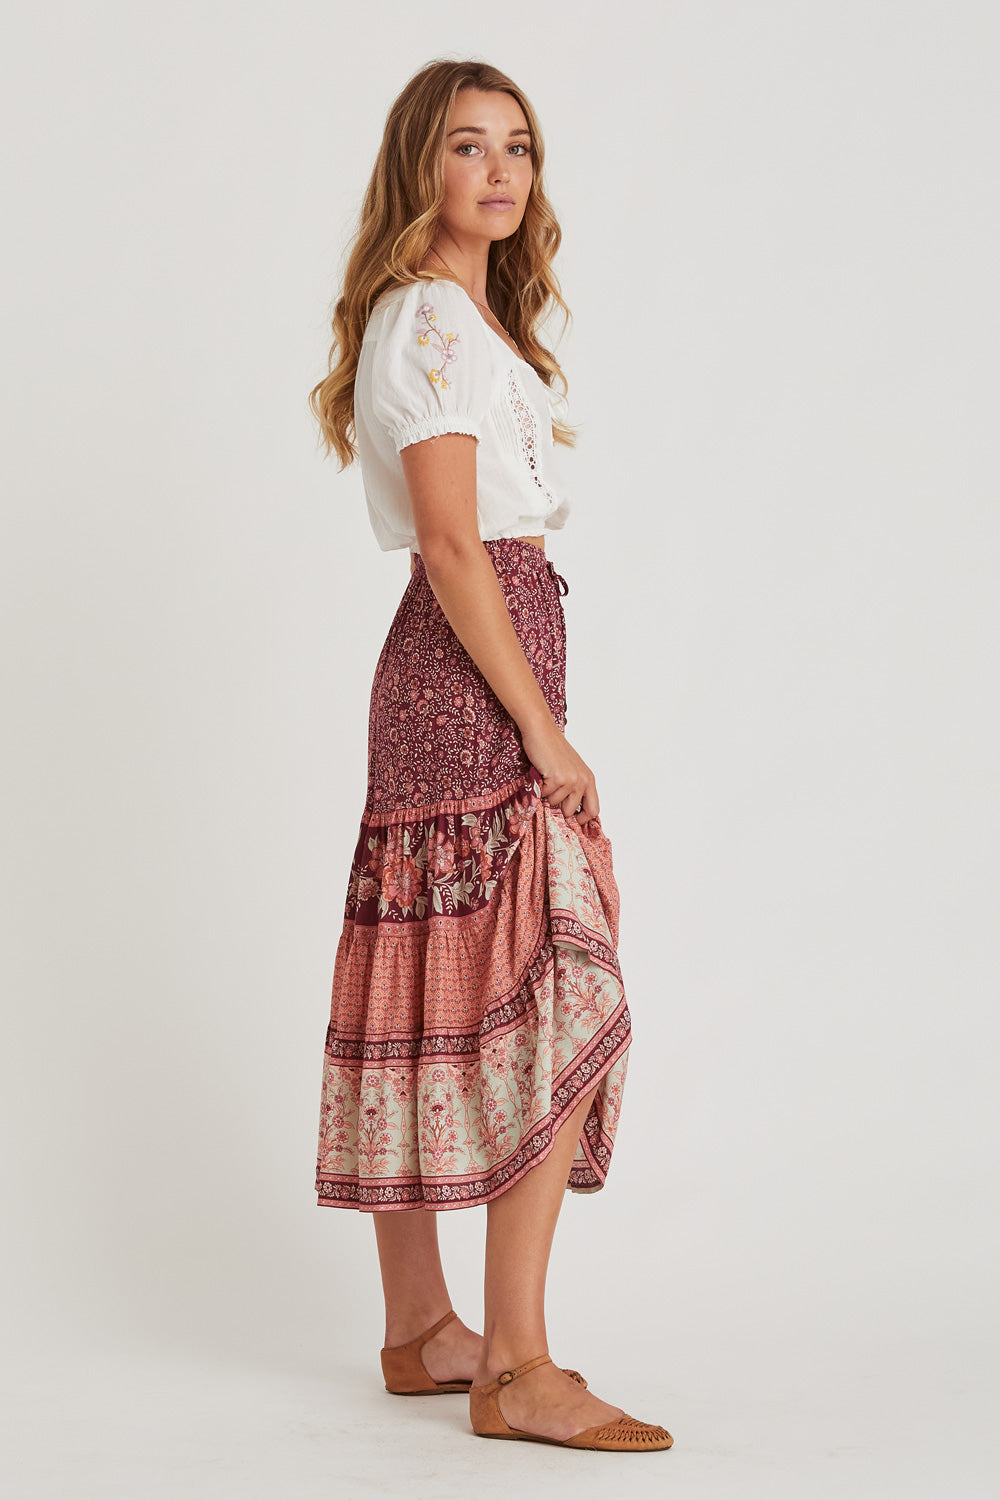 Fleetwood Skirt in Pomegranate